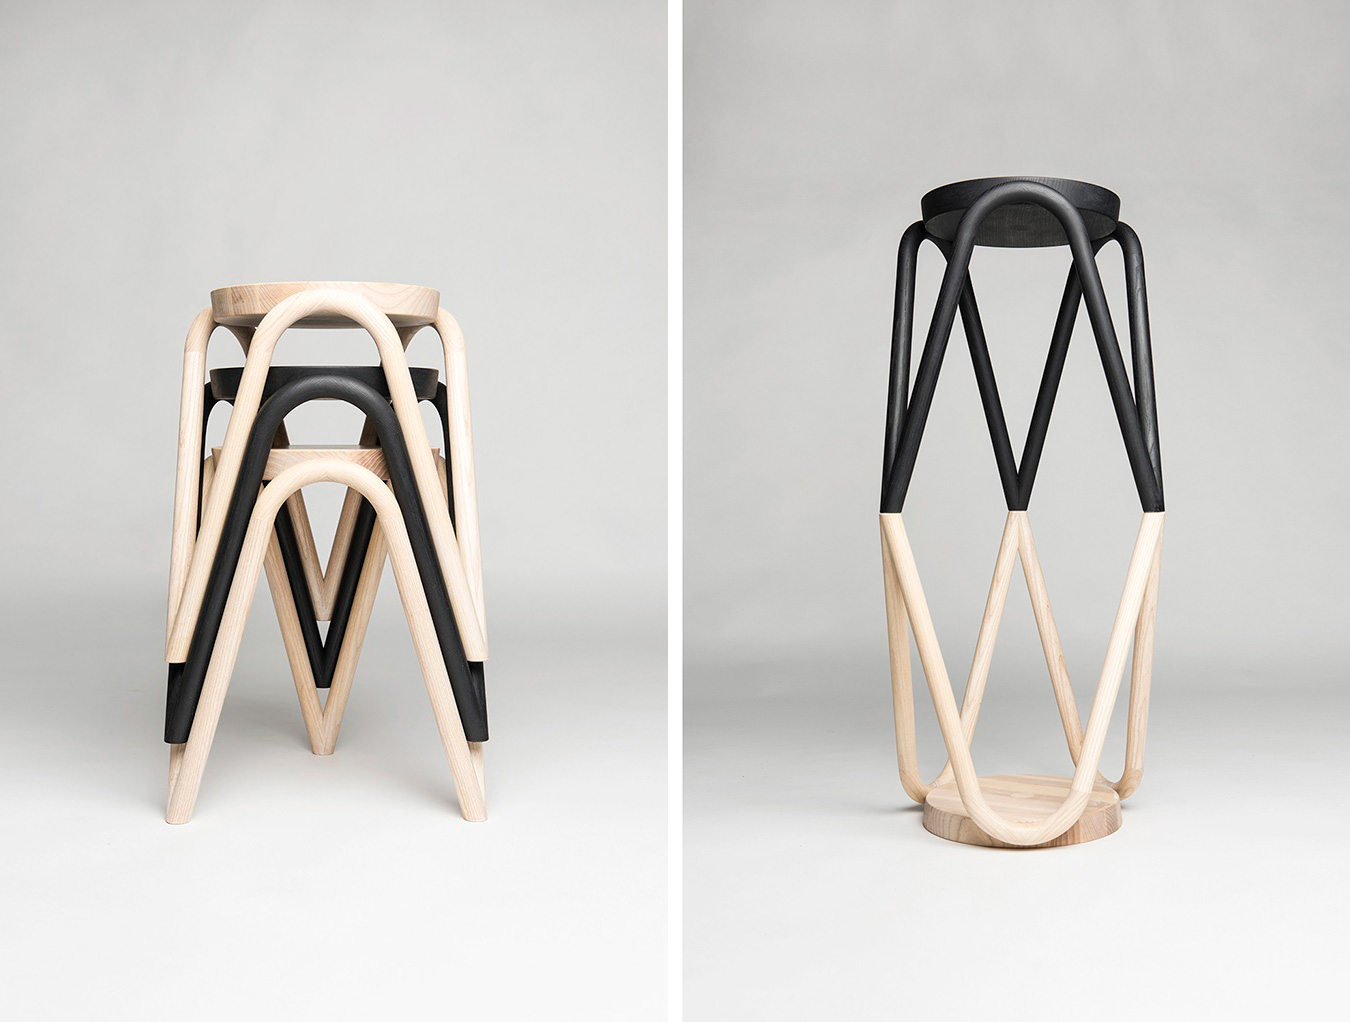 Vava Stool by Kristine Five Melvaer for Artek | Yellowtrace